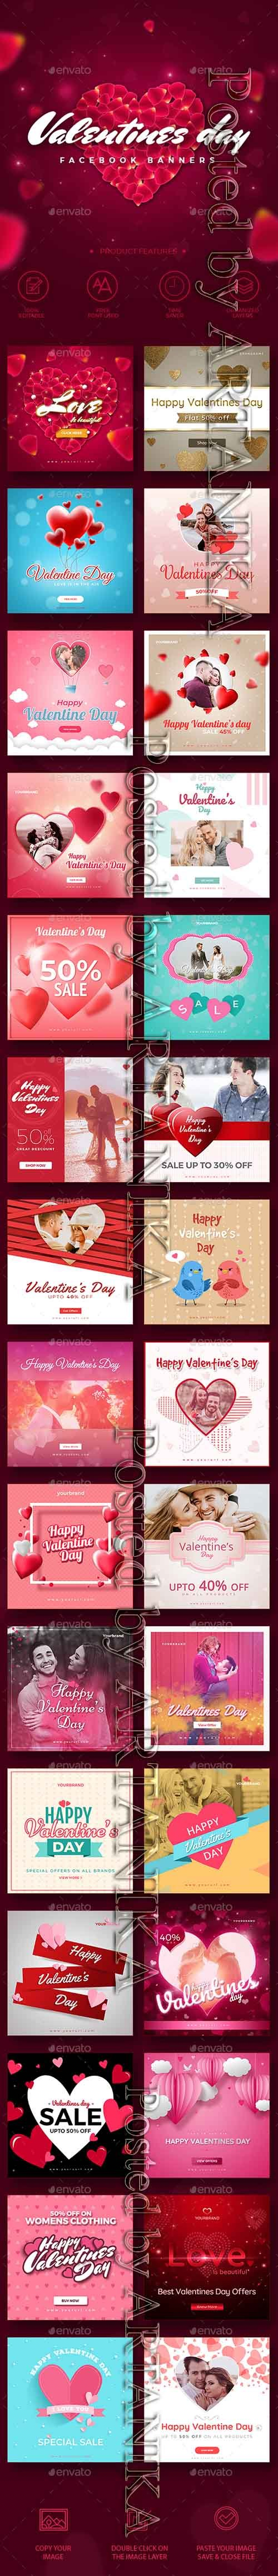 GraphicRiver - 30 Valentines Day Instagram Promotion Banners 21276406